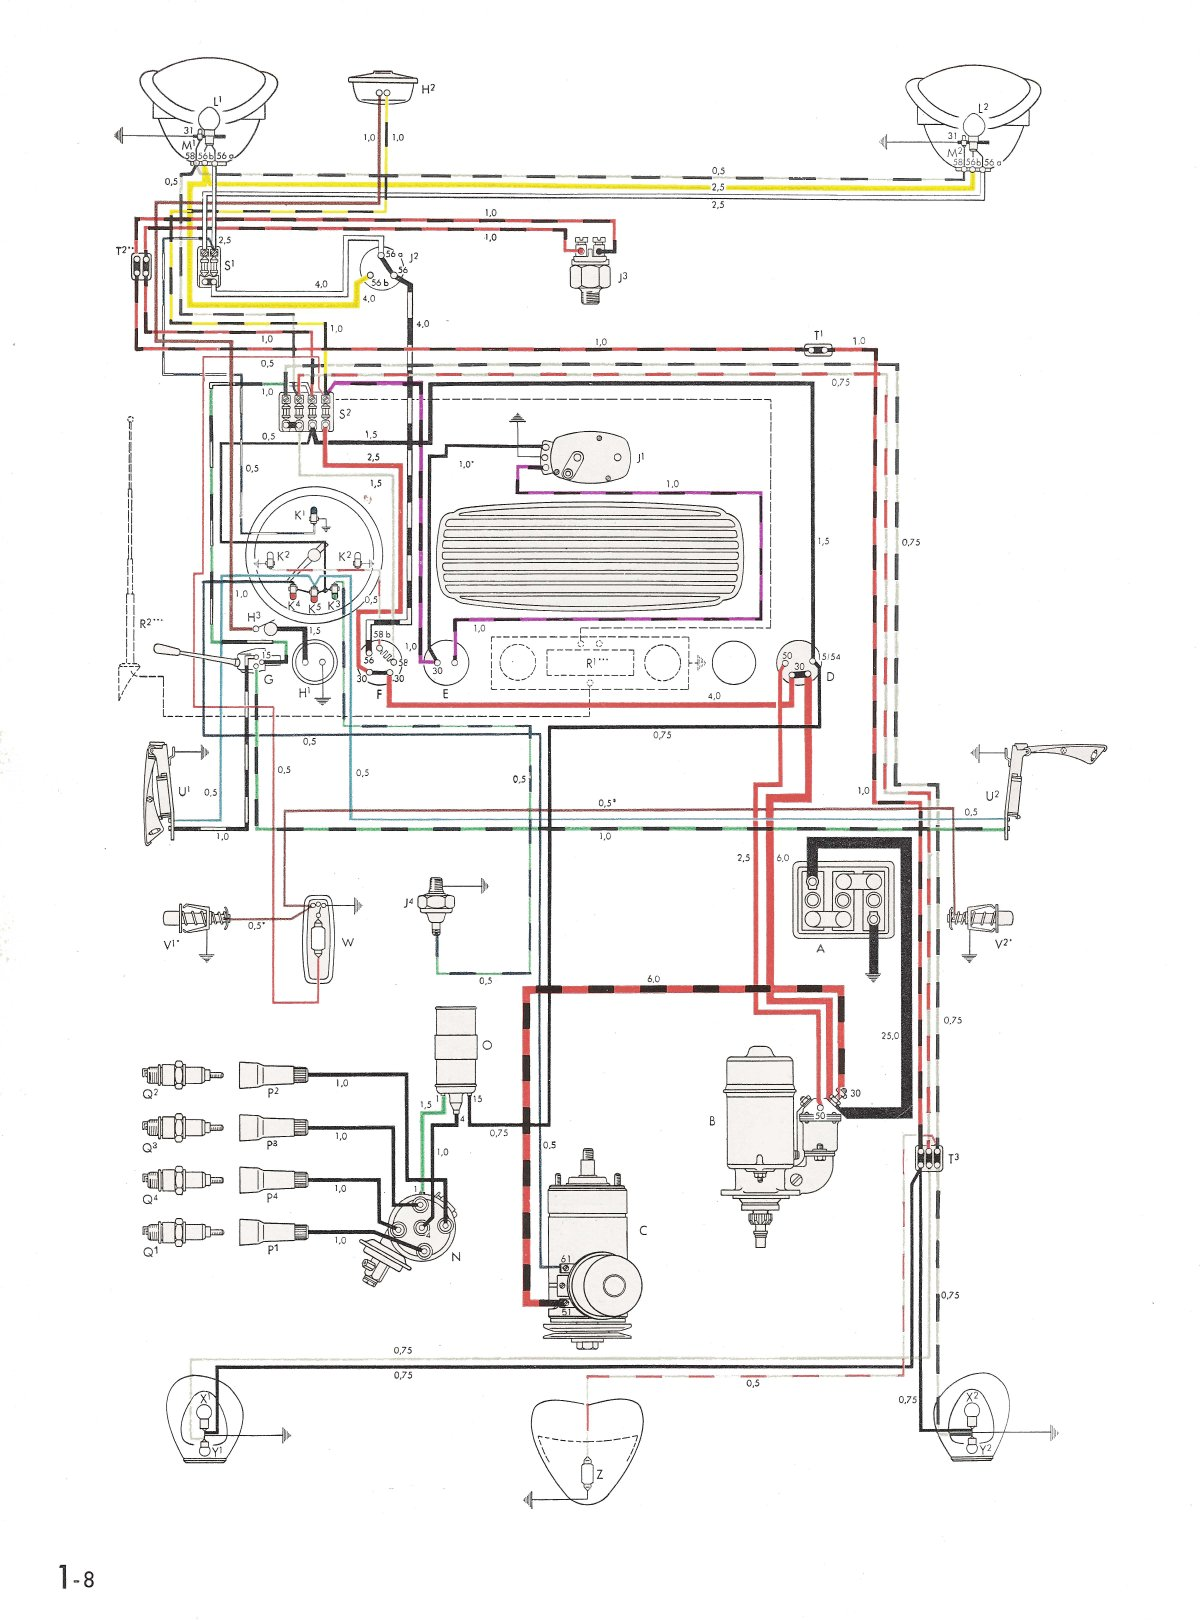 1600 vw beetle engine wiring harness thesamba.com :: type 1 wiring diagrams 1600 vw beetle wiring diagram